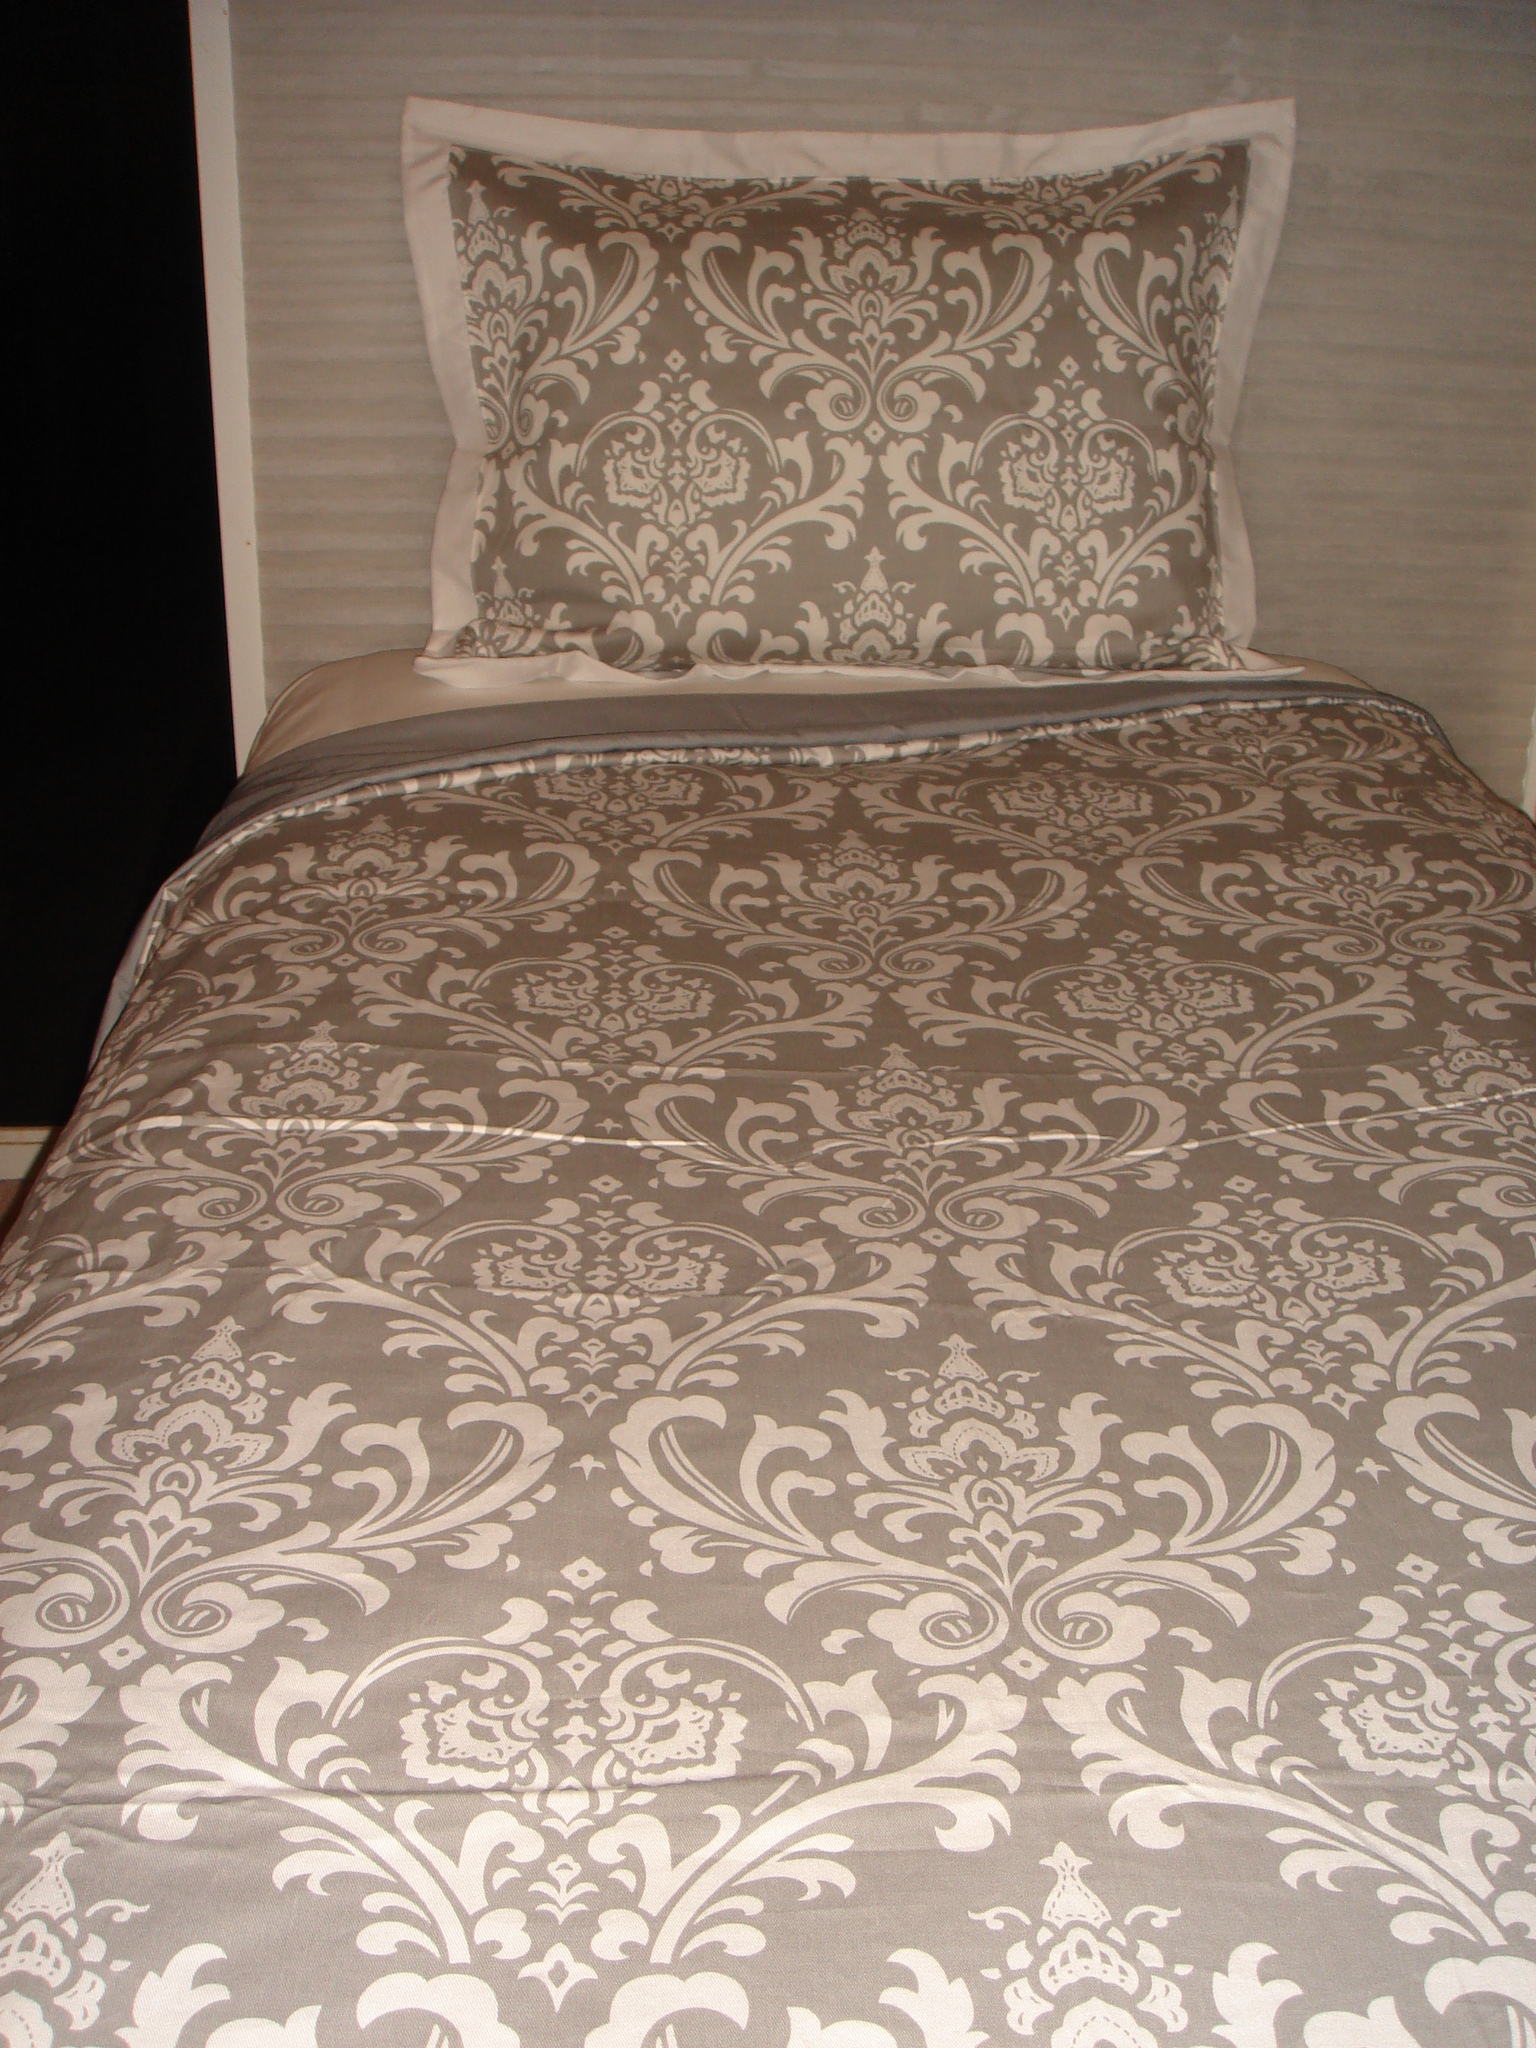 Cozy damask bedding for bed decorating ideas with damask bedding set and damask crib bedding